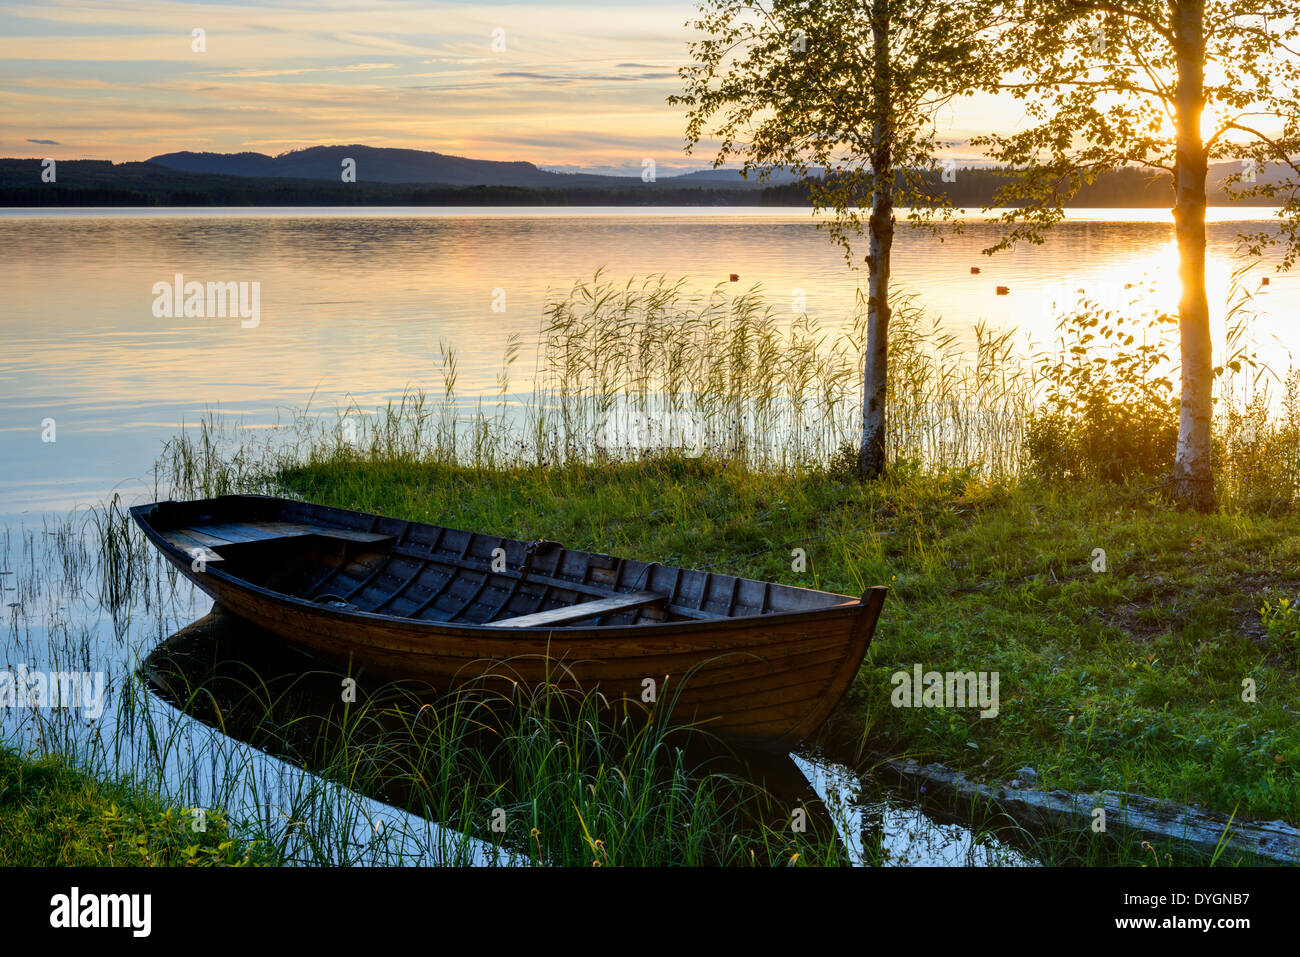 Wooden boat at the lakeside at sunset, Solleron, Dalarna, Sweden - Stock Image